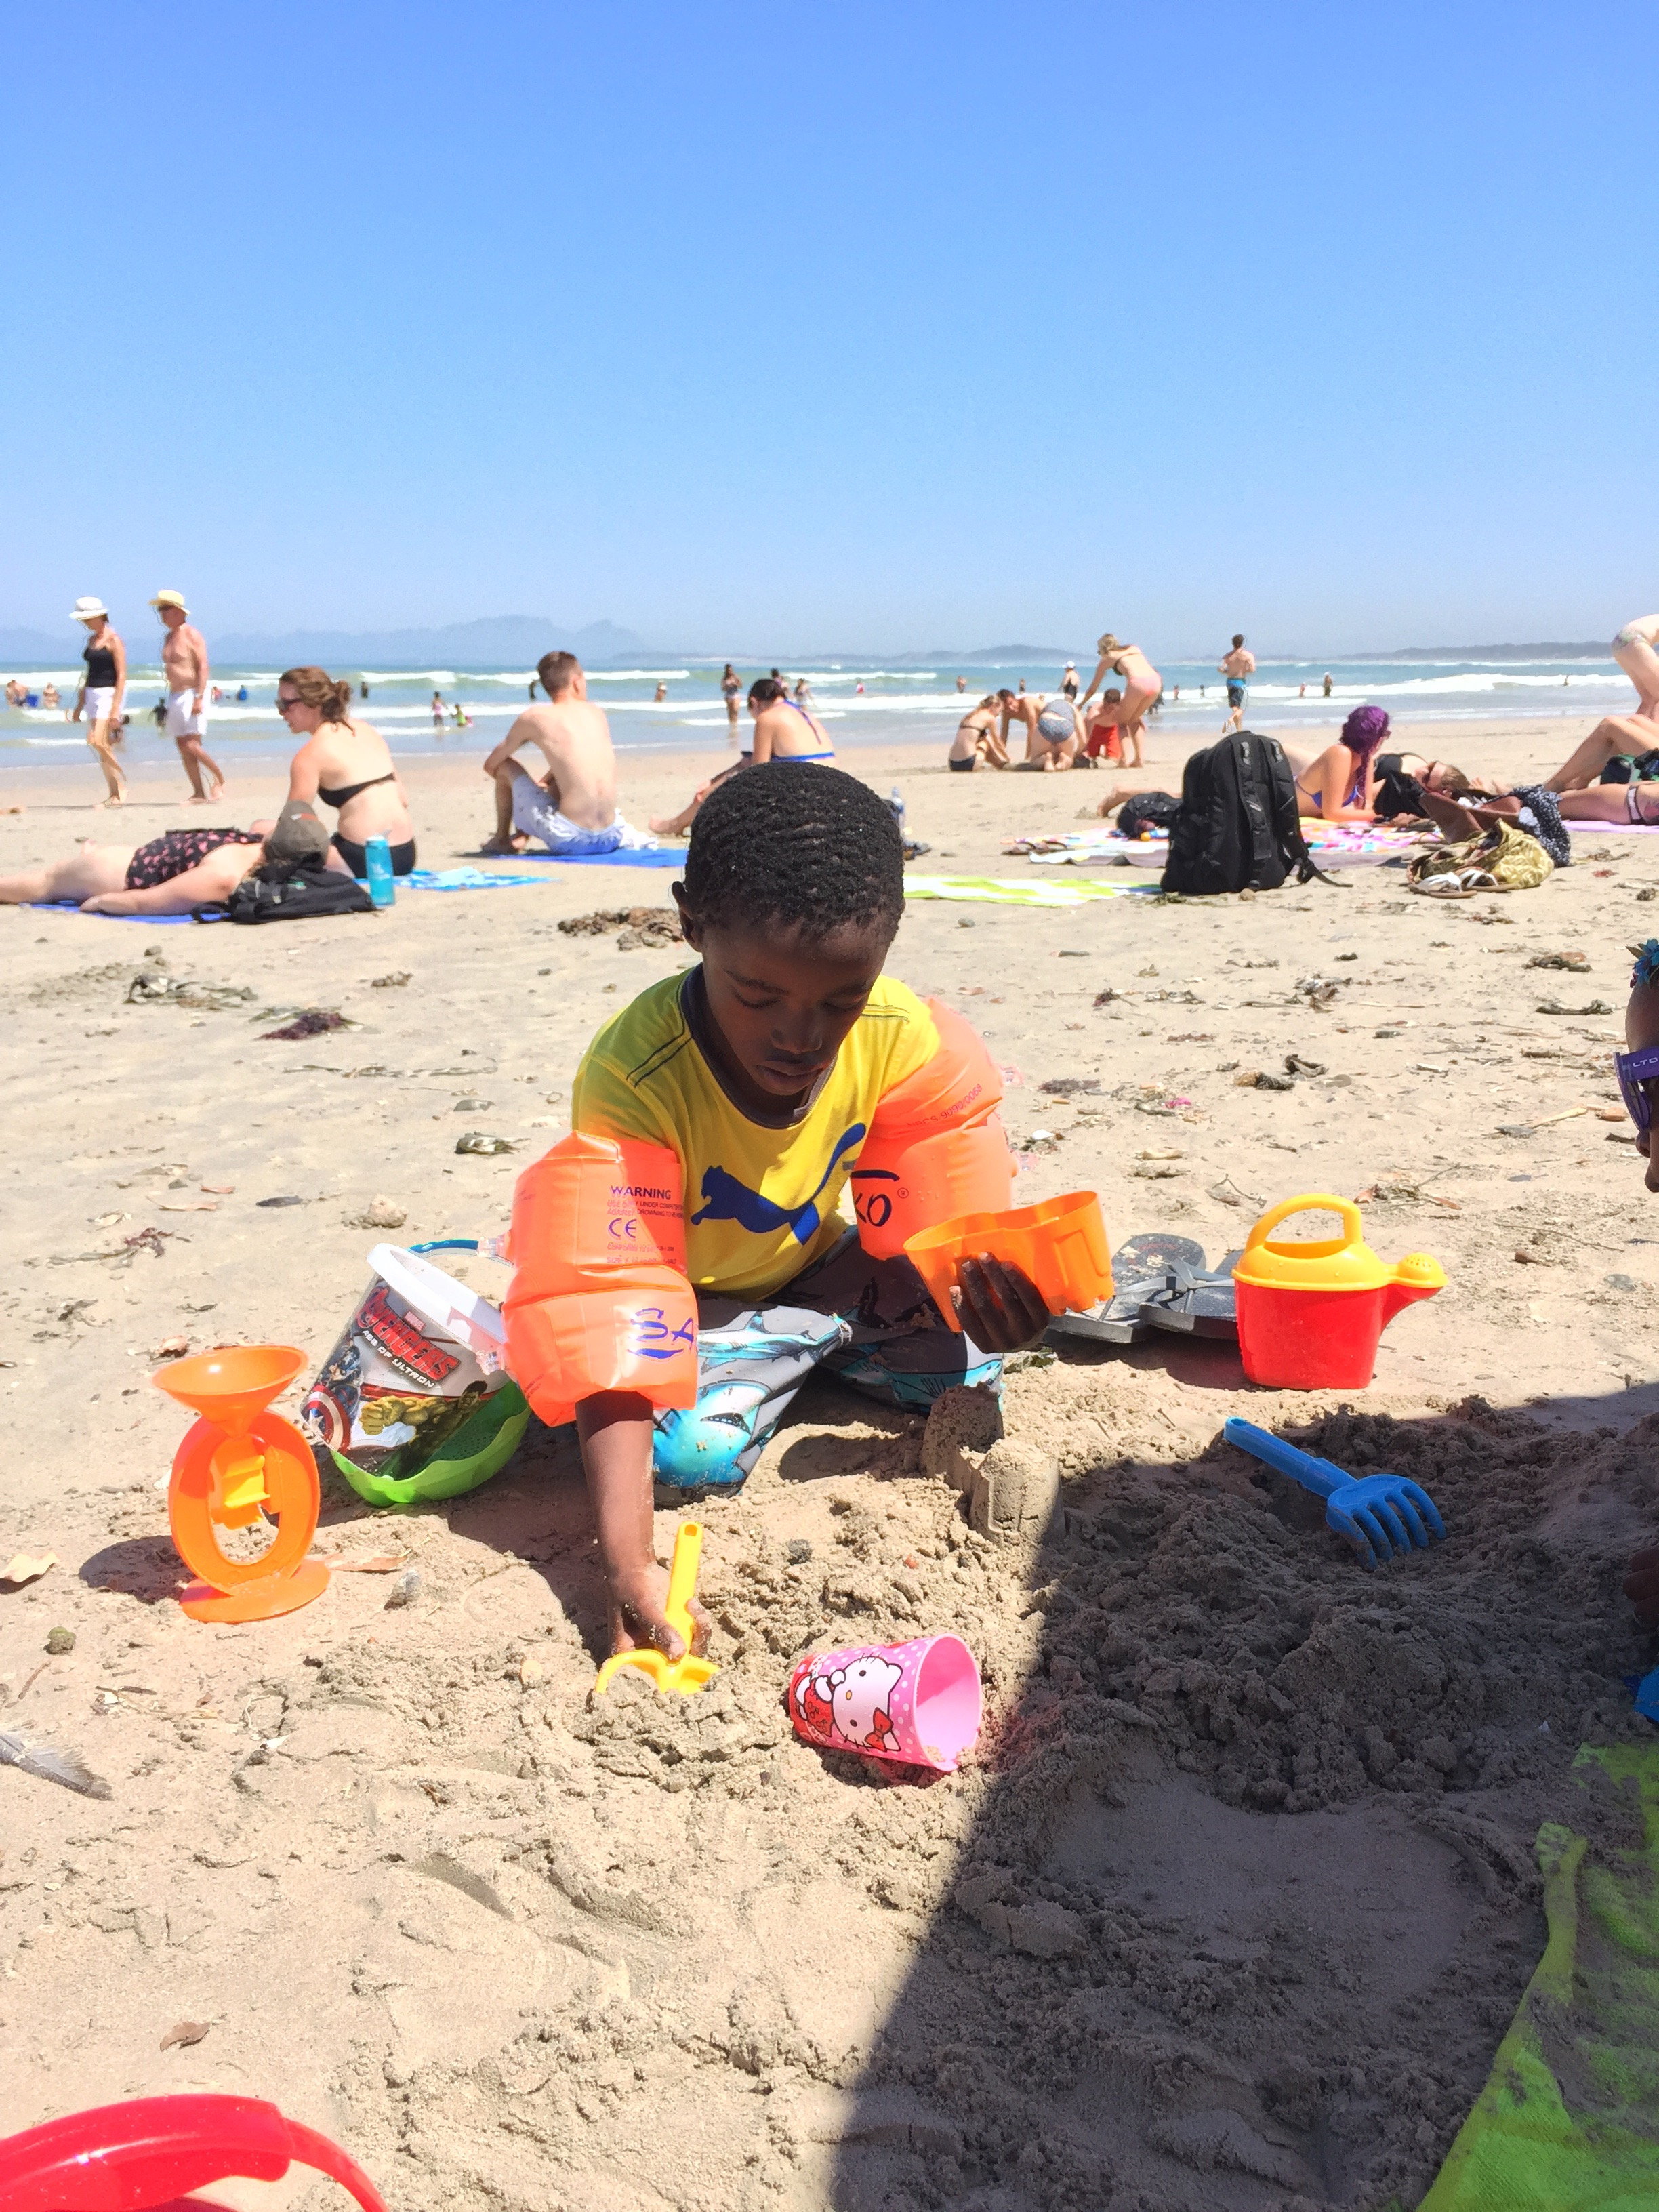 Hard at work building sand castles.